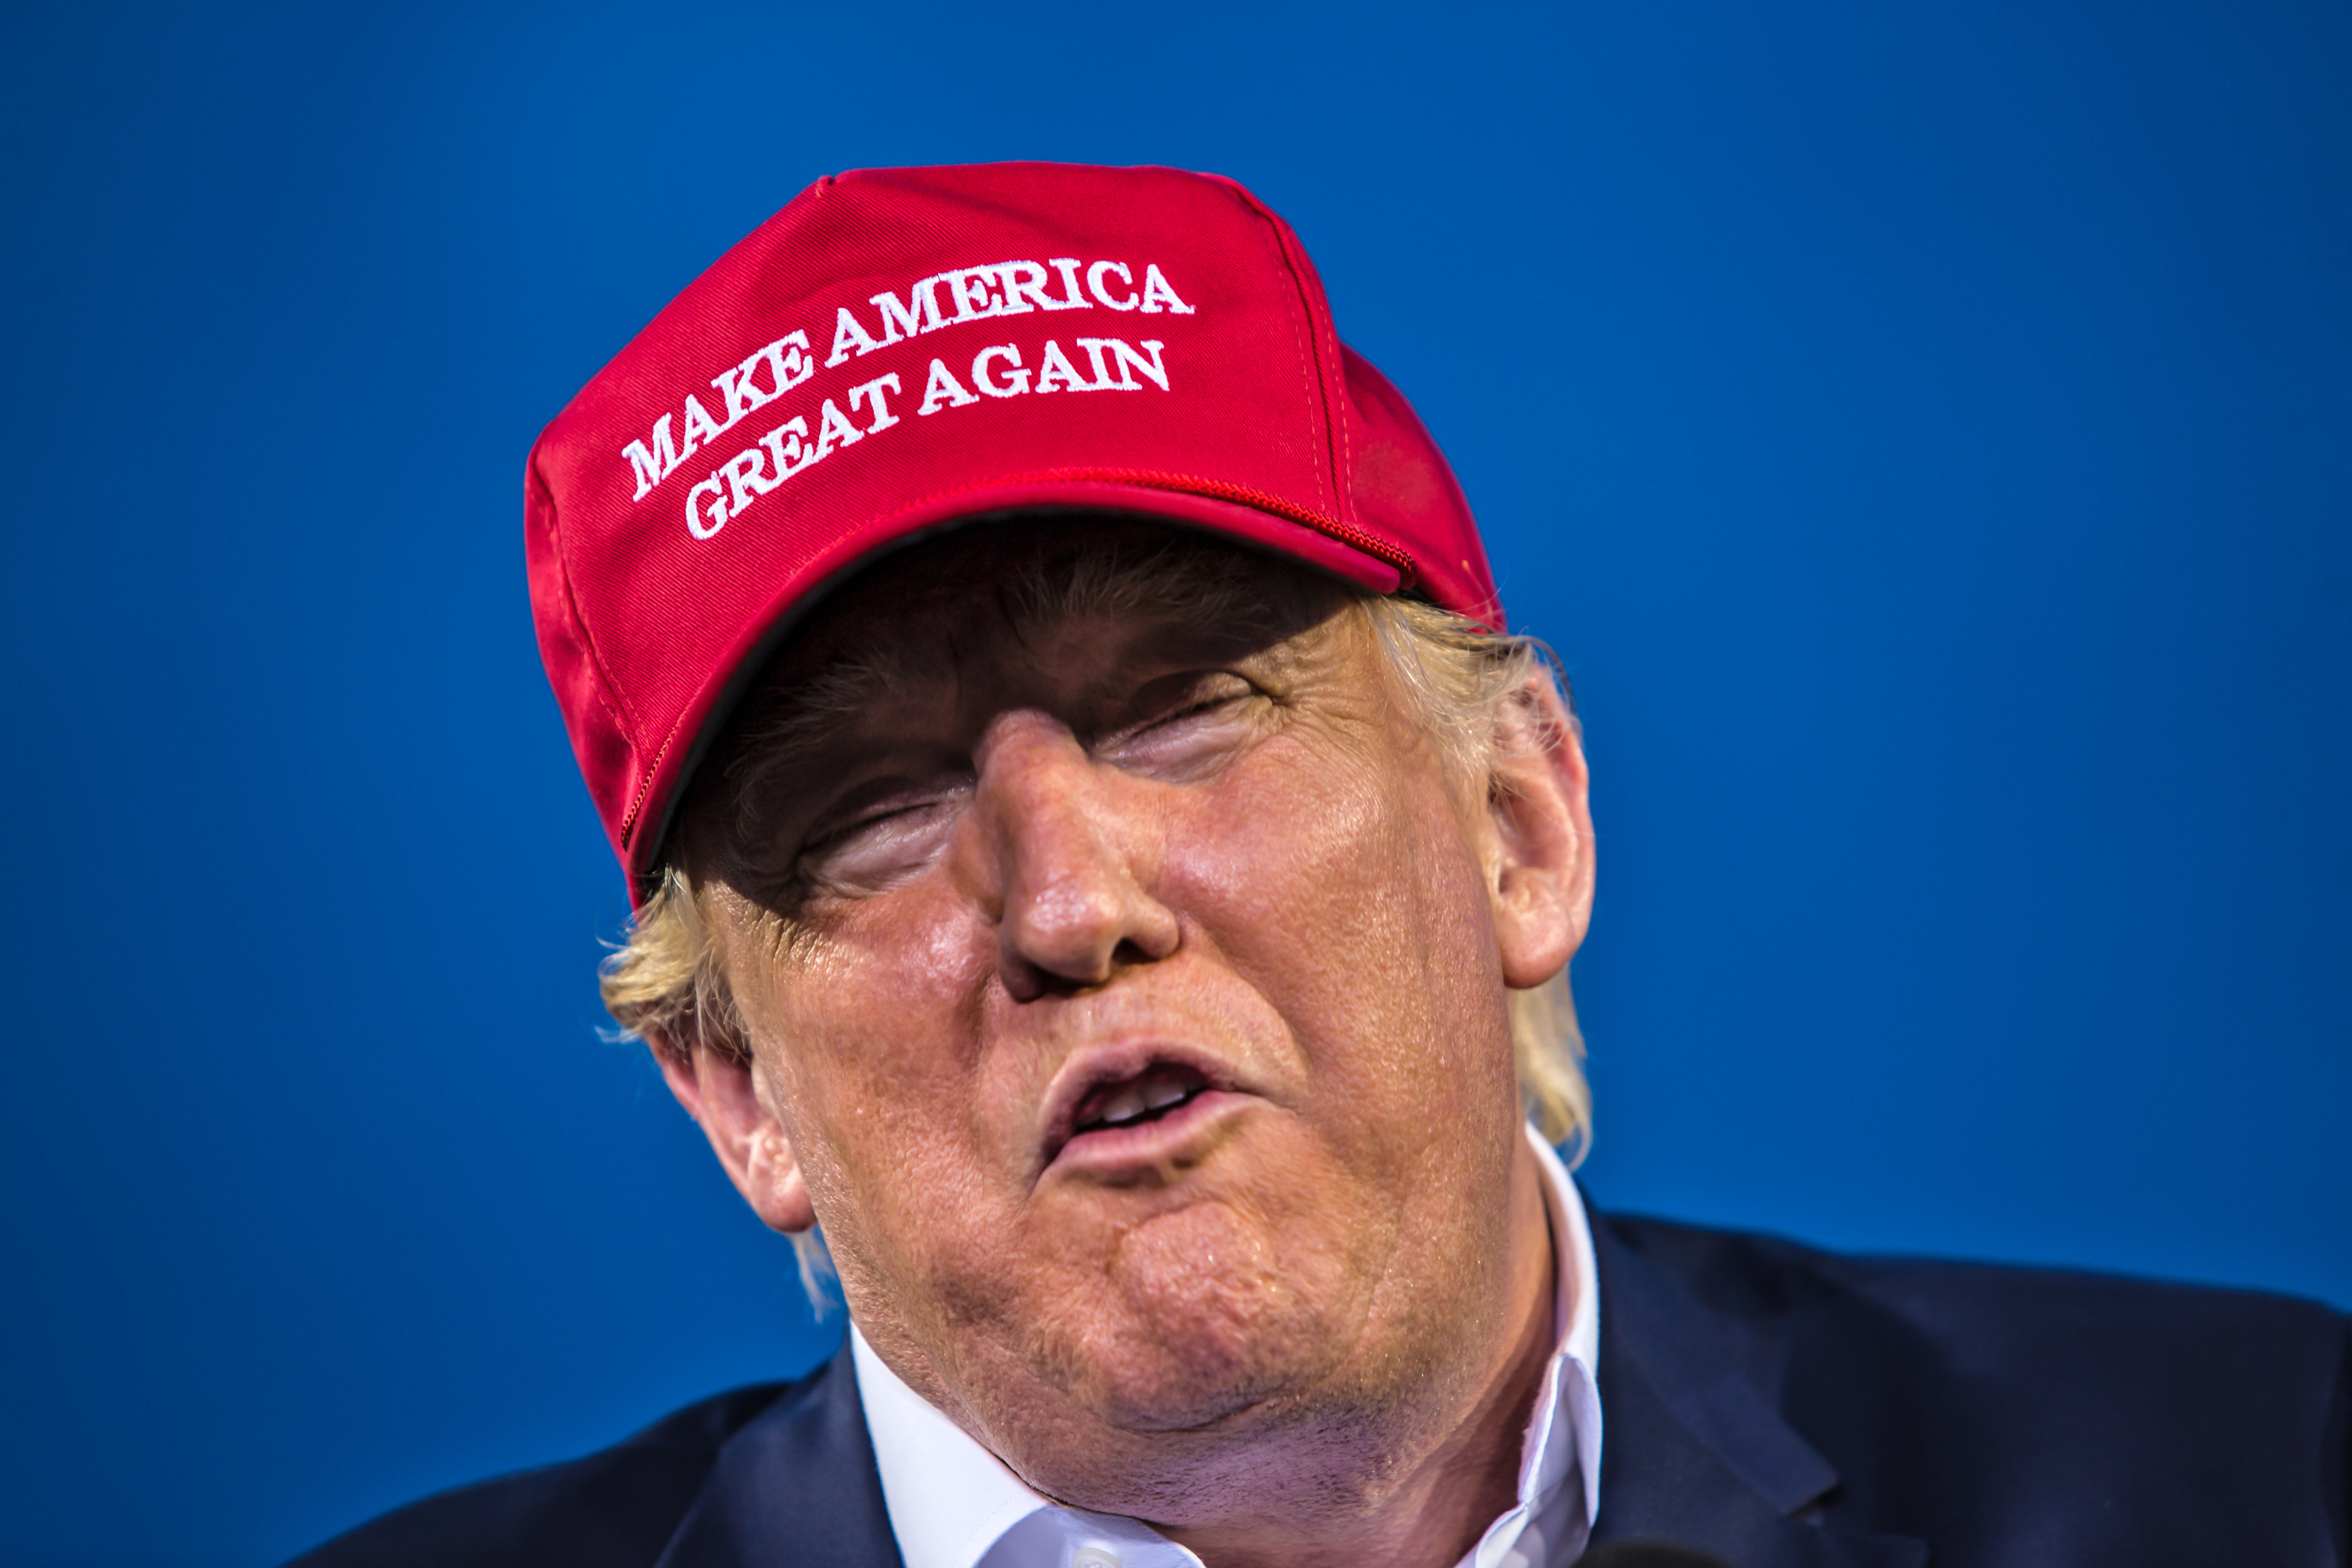 Republican Presidential Candidate Donald Trump's Rally in Mobile Alabama